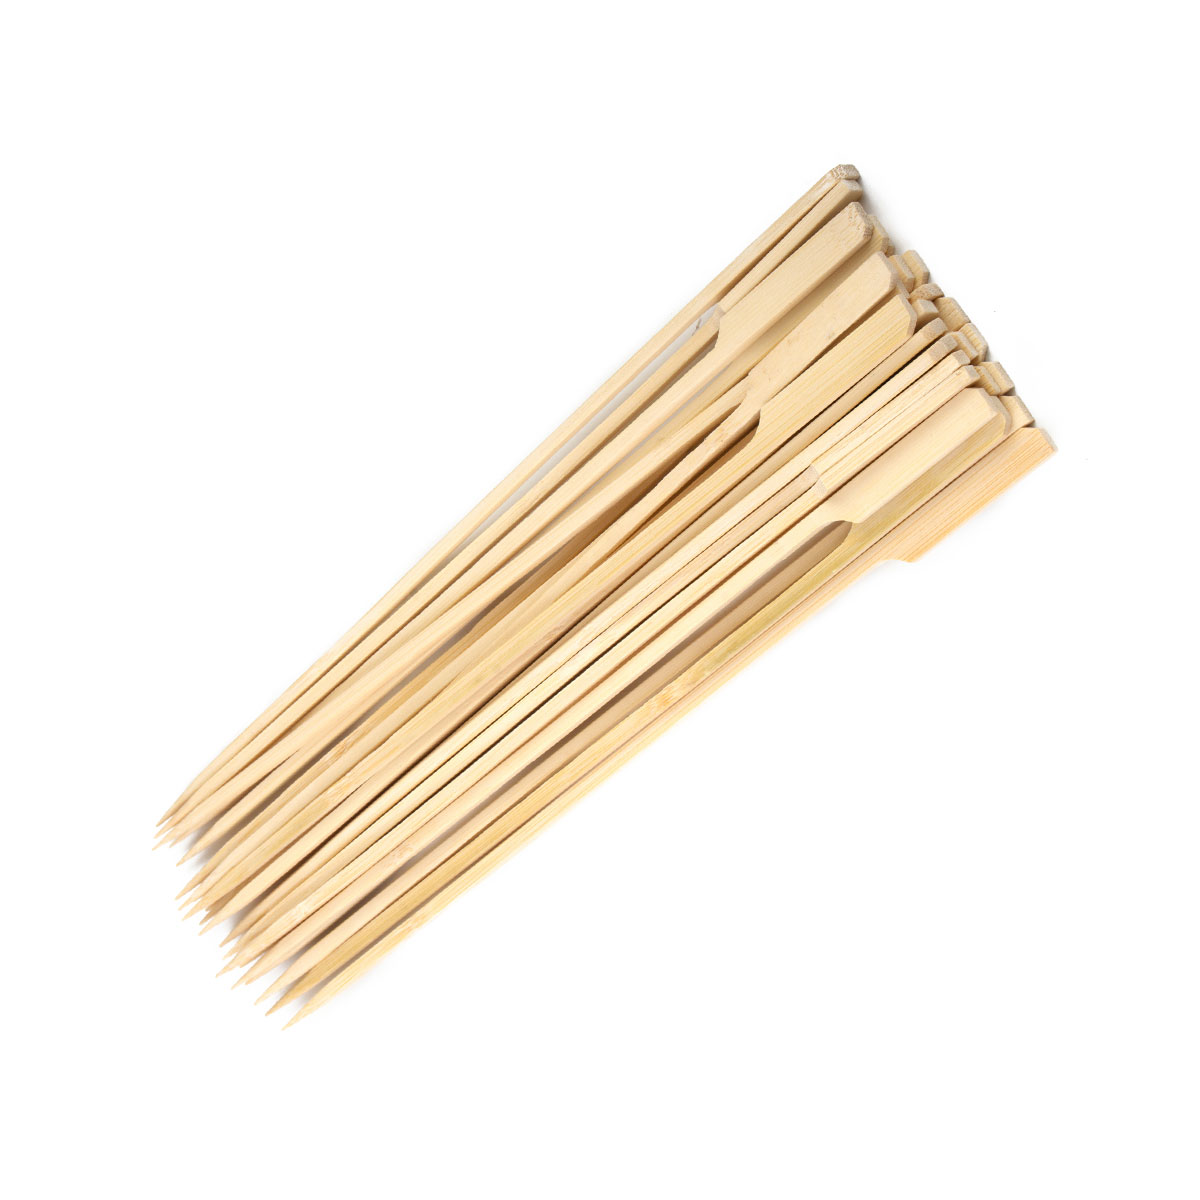 GRILLWORX BBQ BAMBOO SKEWERS 25PK